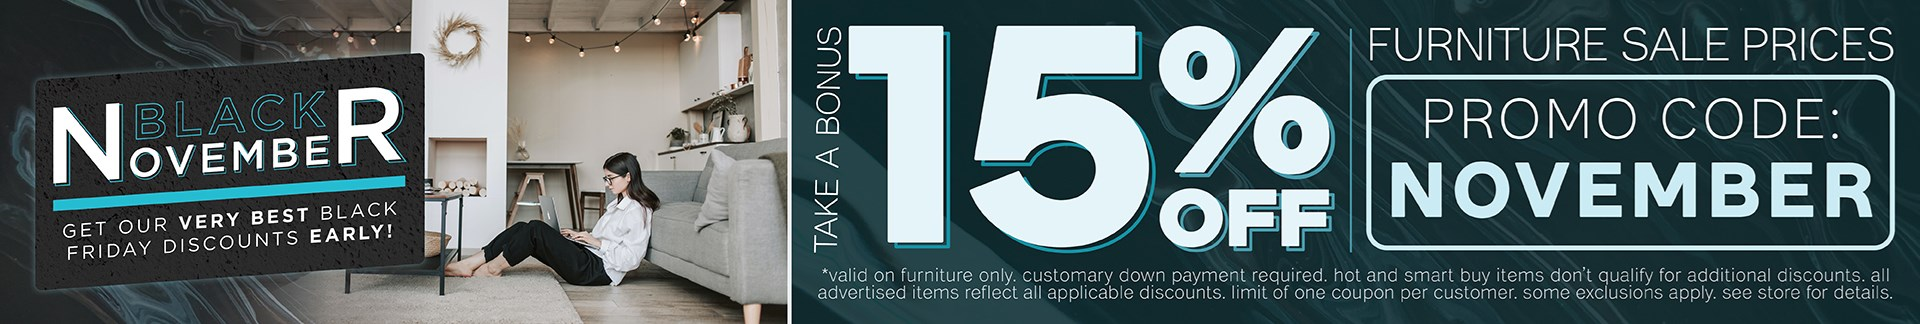 Furniture & ApplianceMart Black November Sale